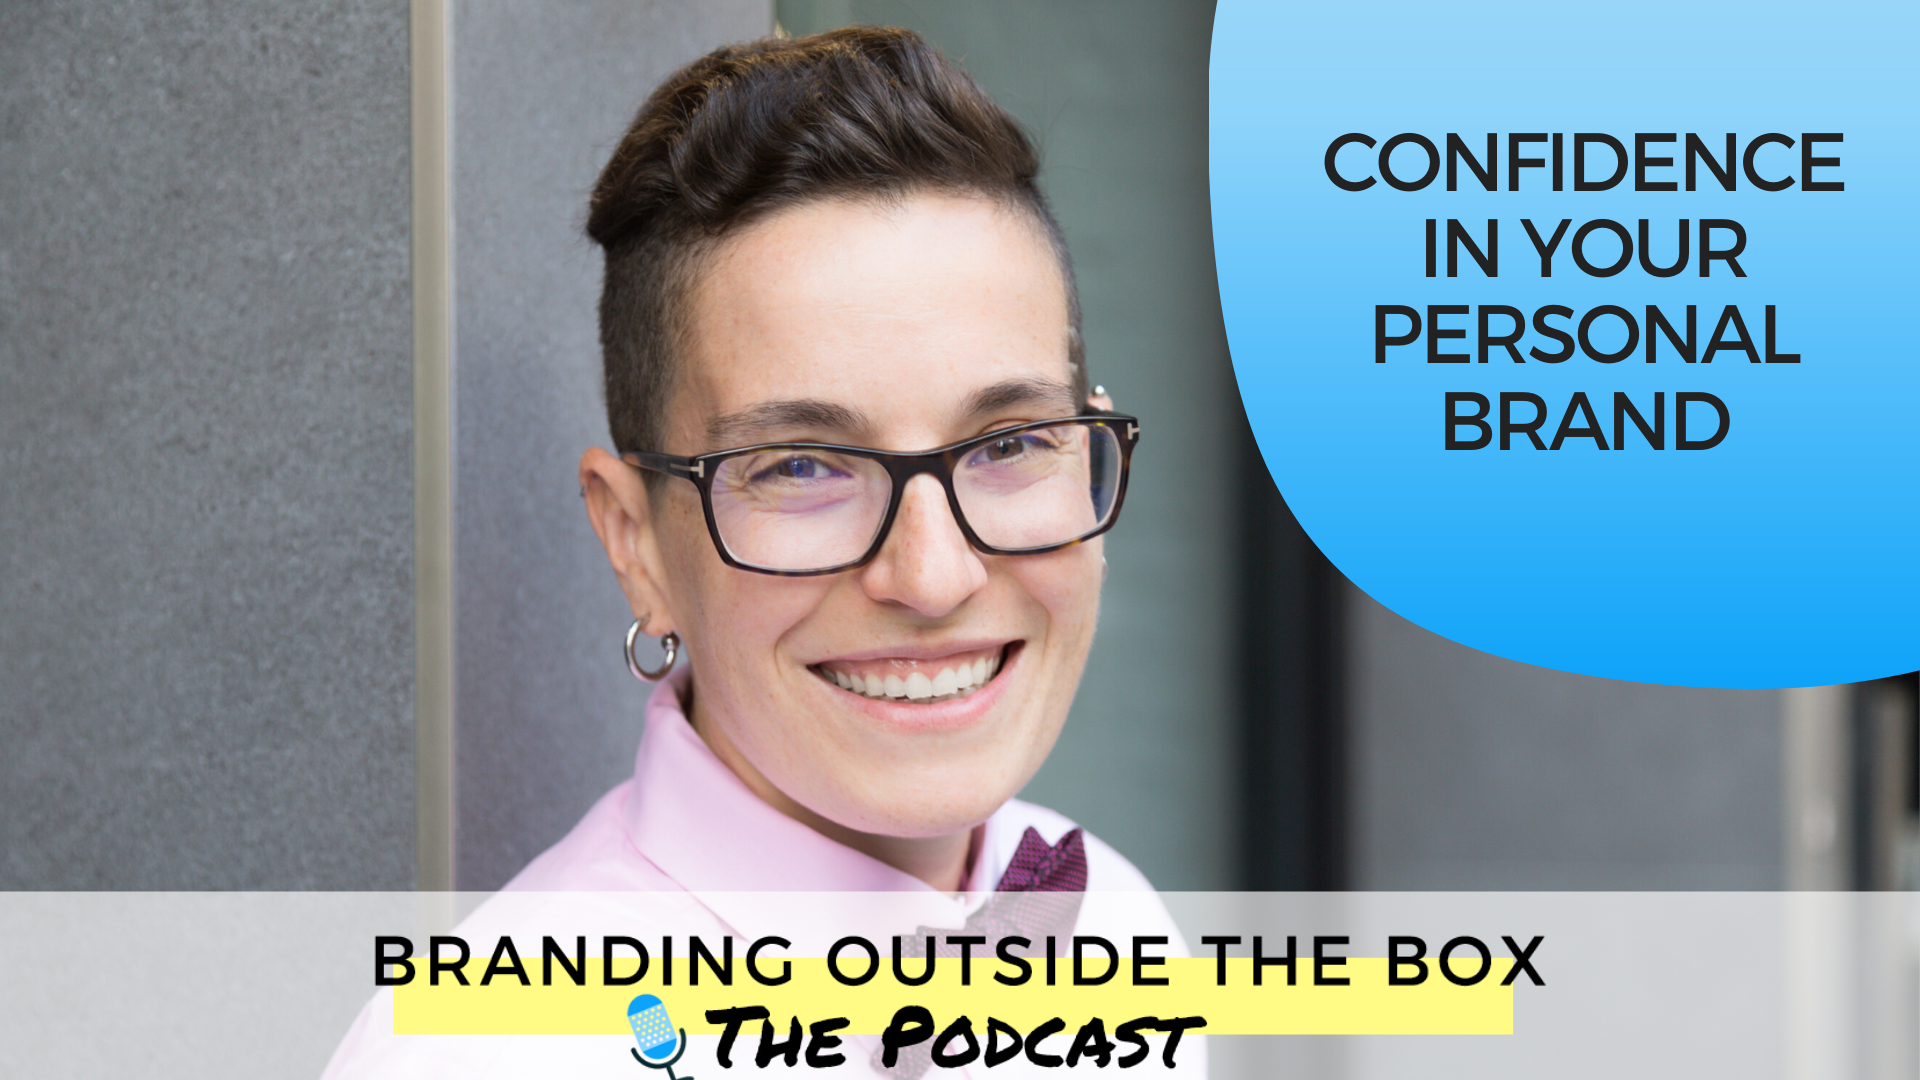 Confidence in Your Personal Brand